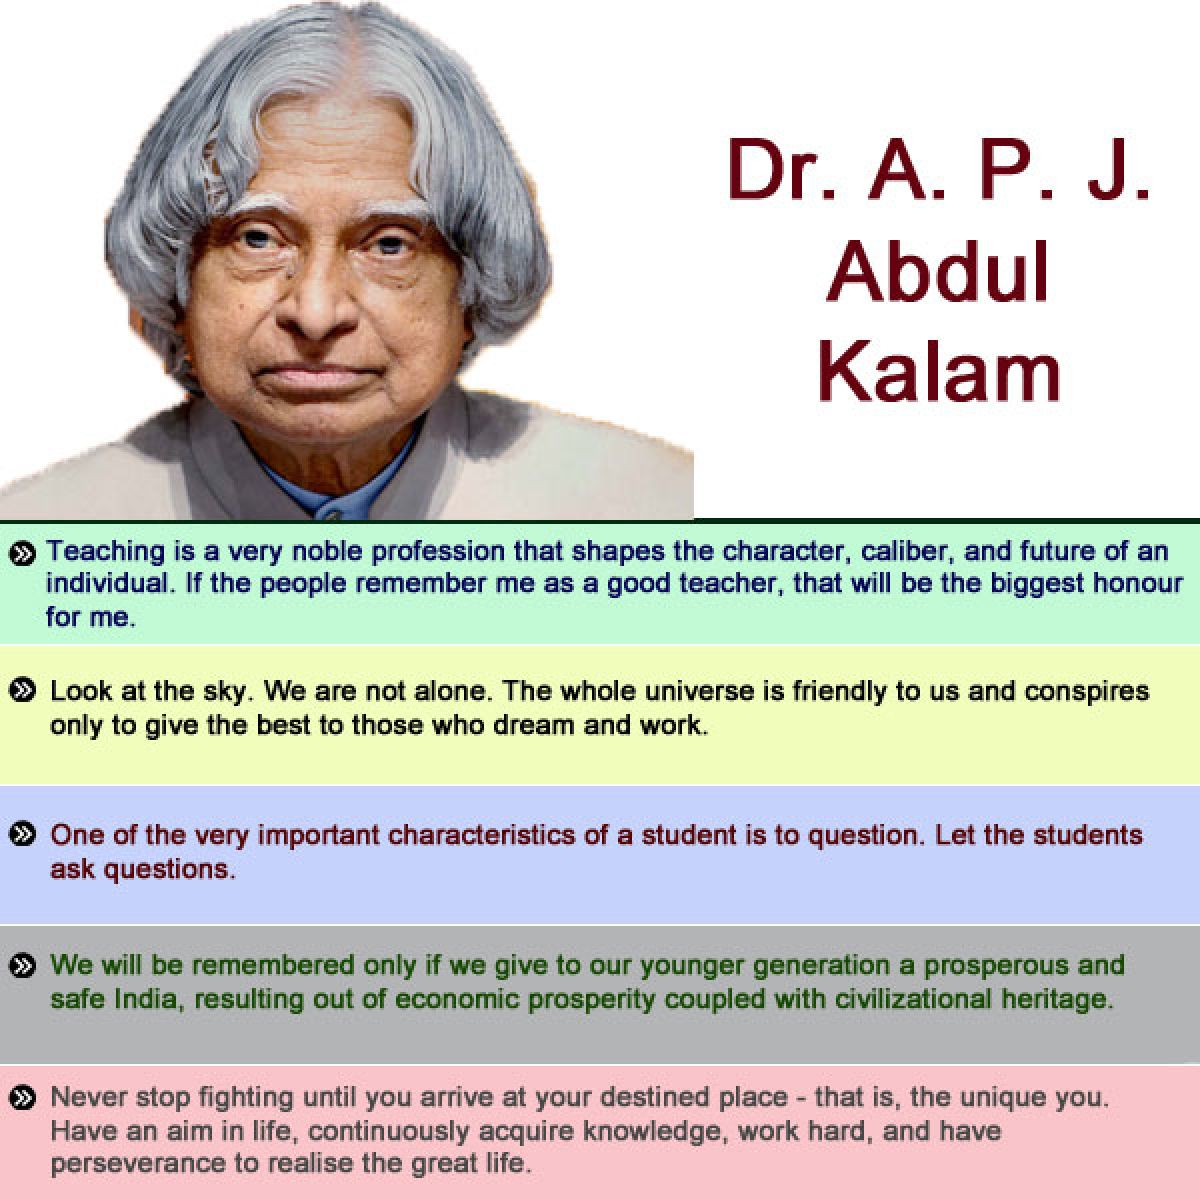 Apj Abdul Kalam S Birth Anniversary Top Quotes By The Missile Man Of India Oneindia News